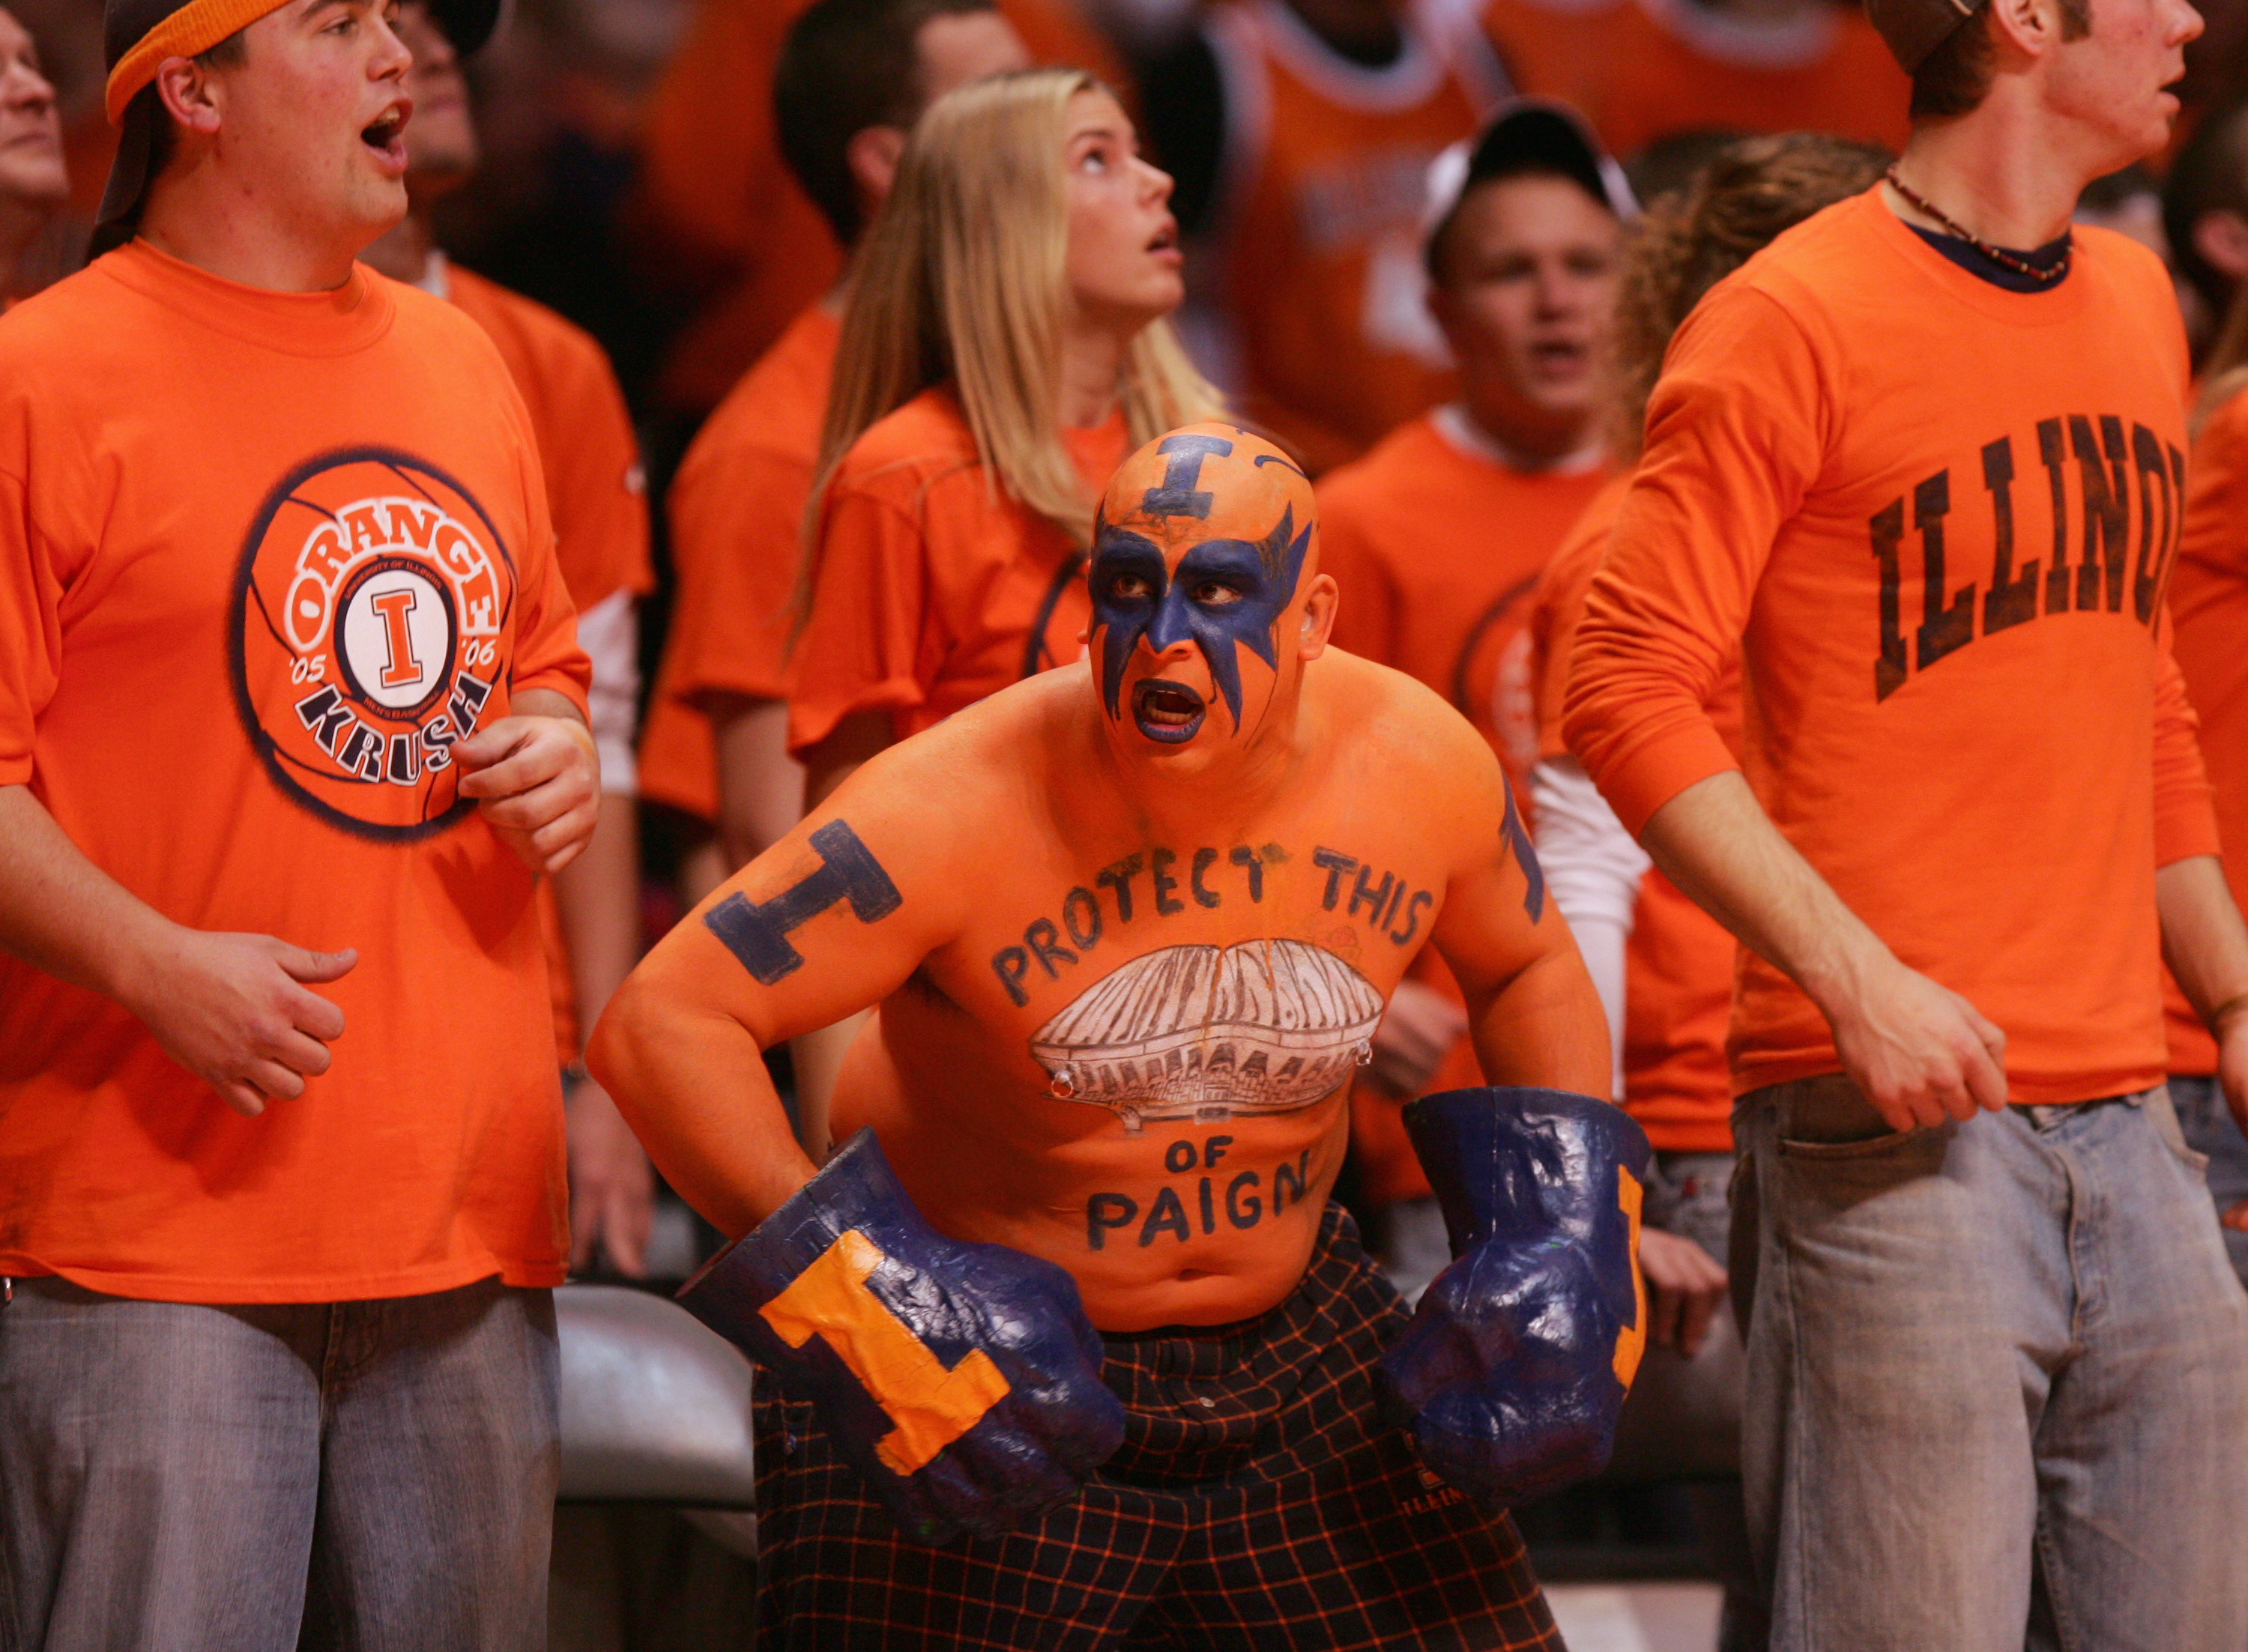 56803419-michigan-state-spartans-v-illinois-fighting-illini.jpg